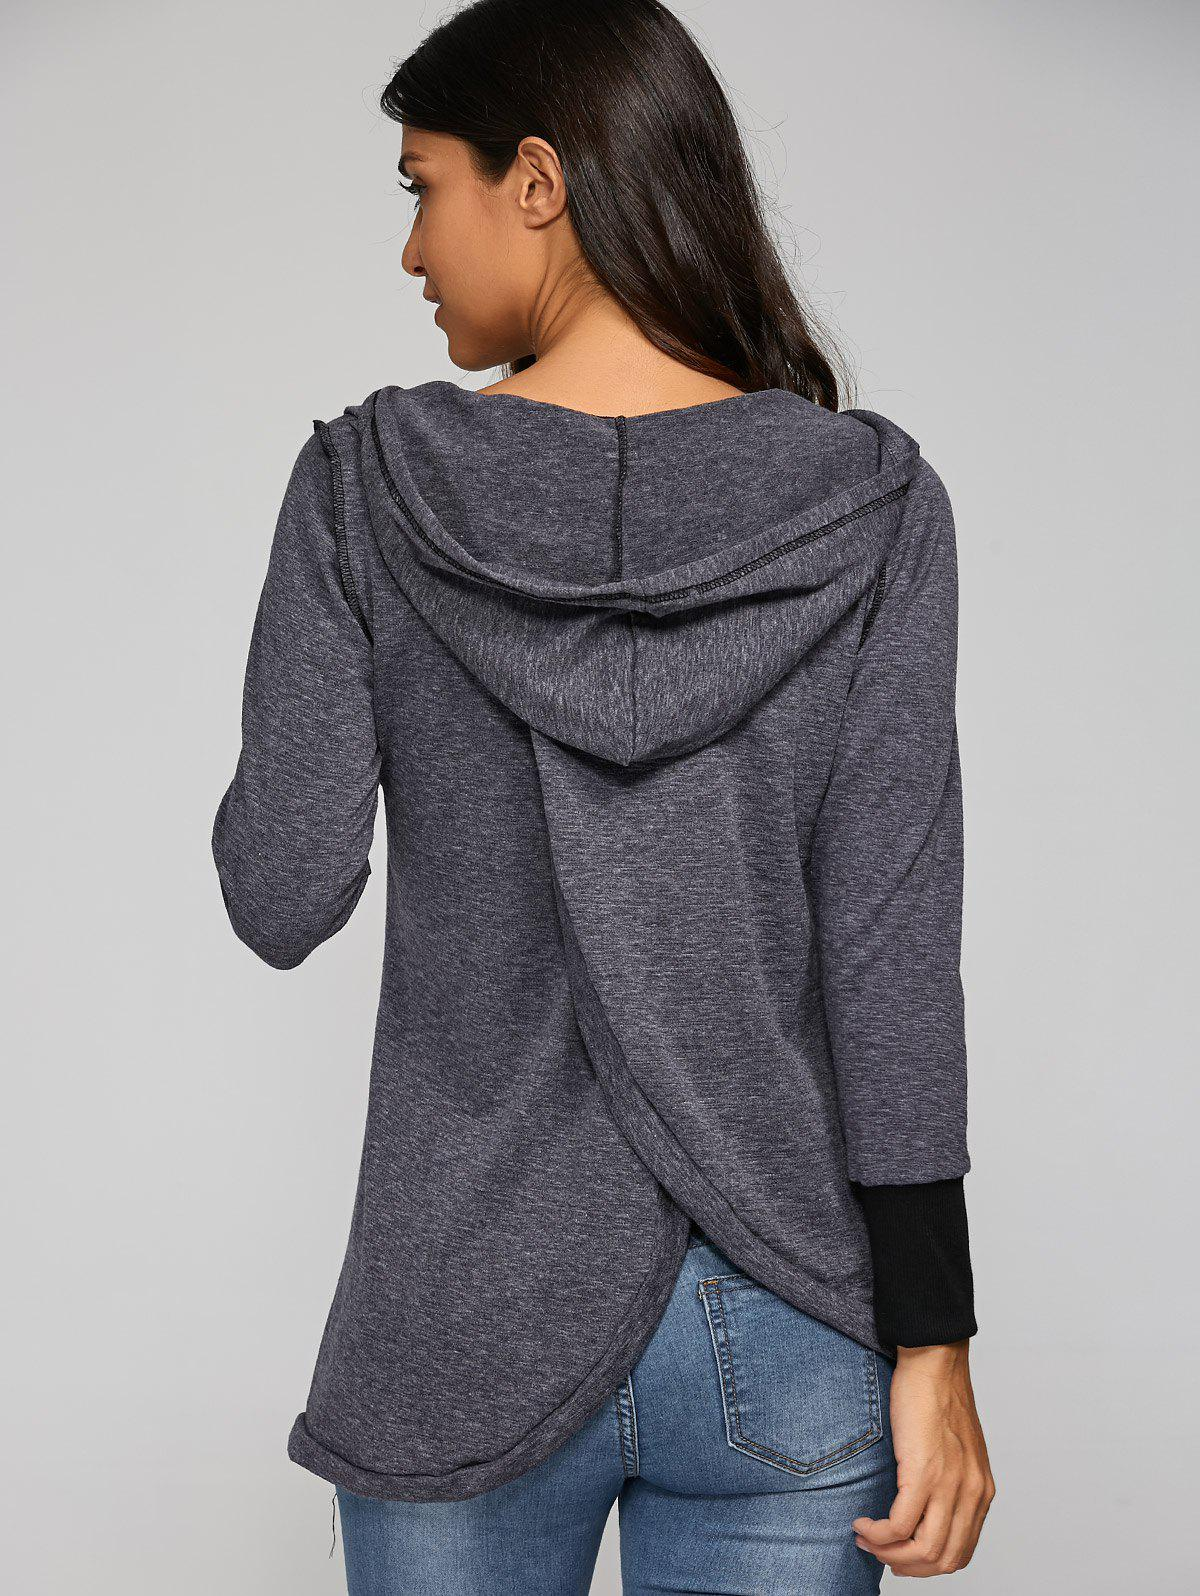 Back Cross Hooded T-Shirt - DEEP GRAY L